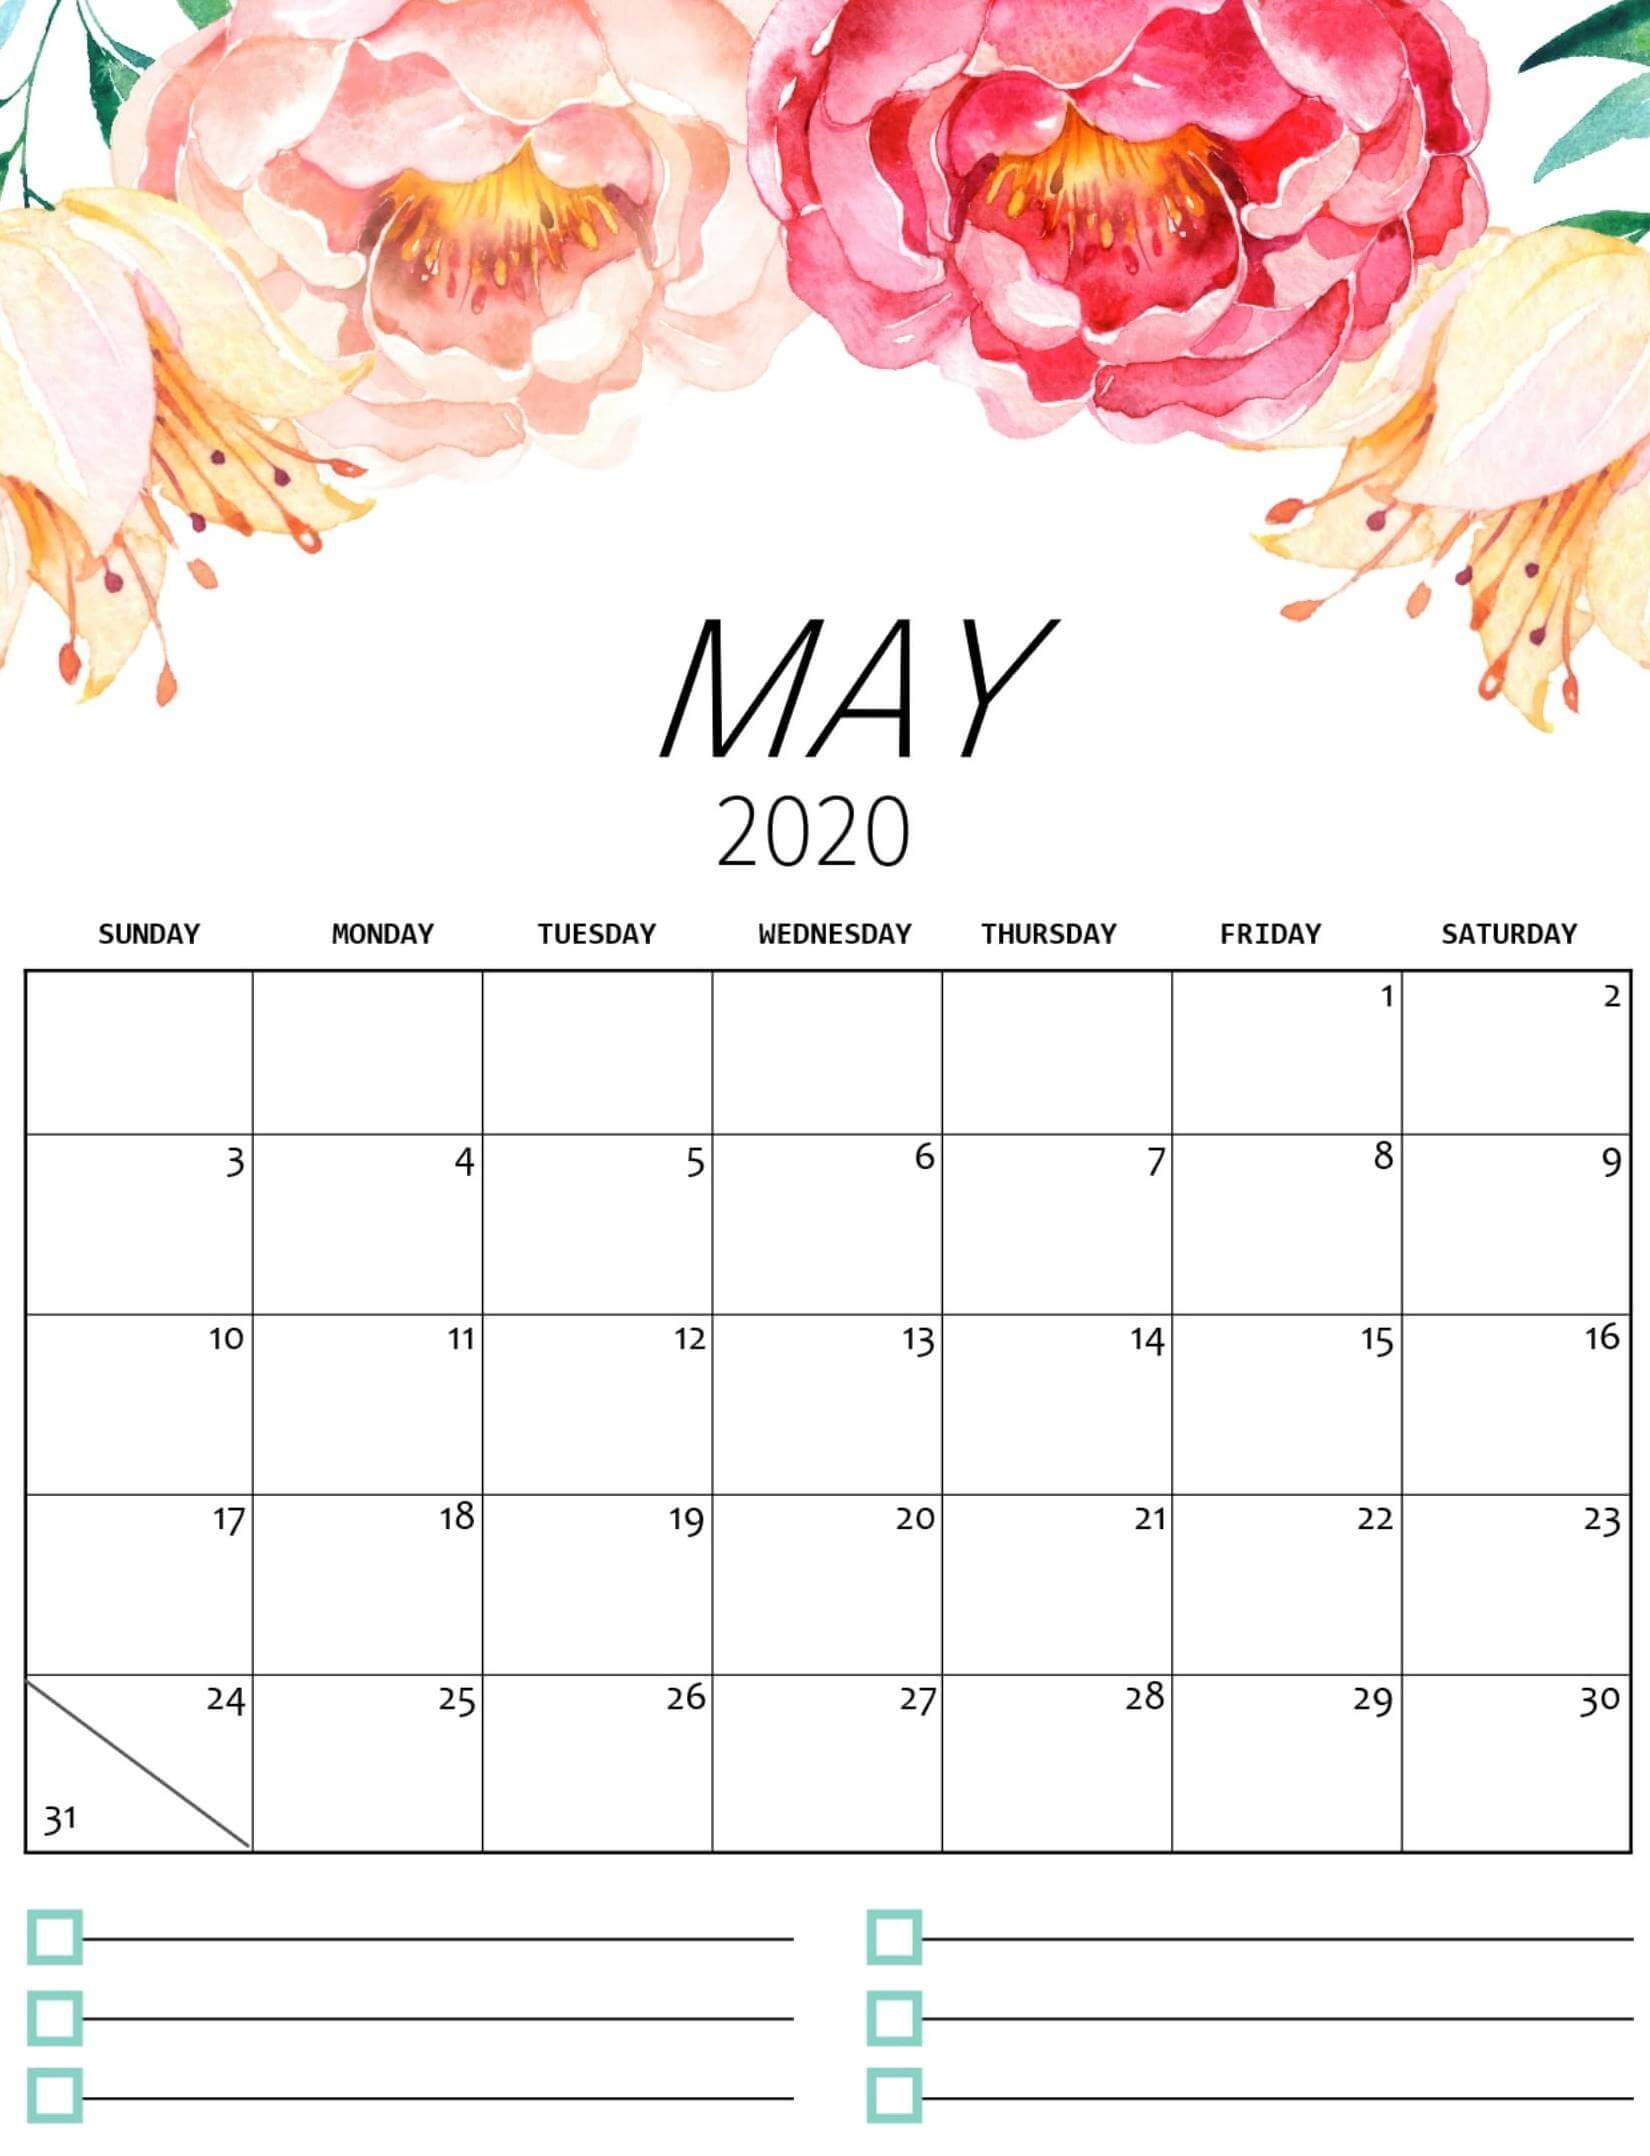 May 2020 Floral Calendar